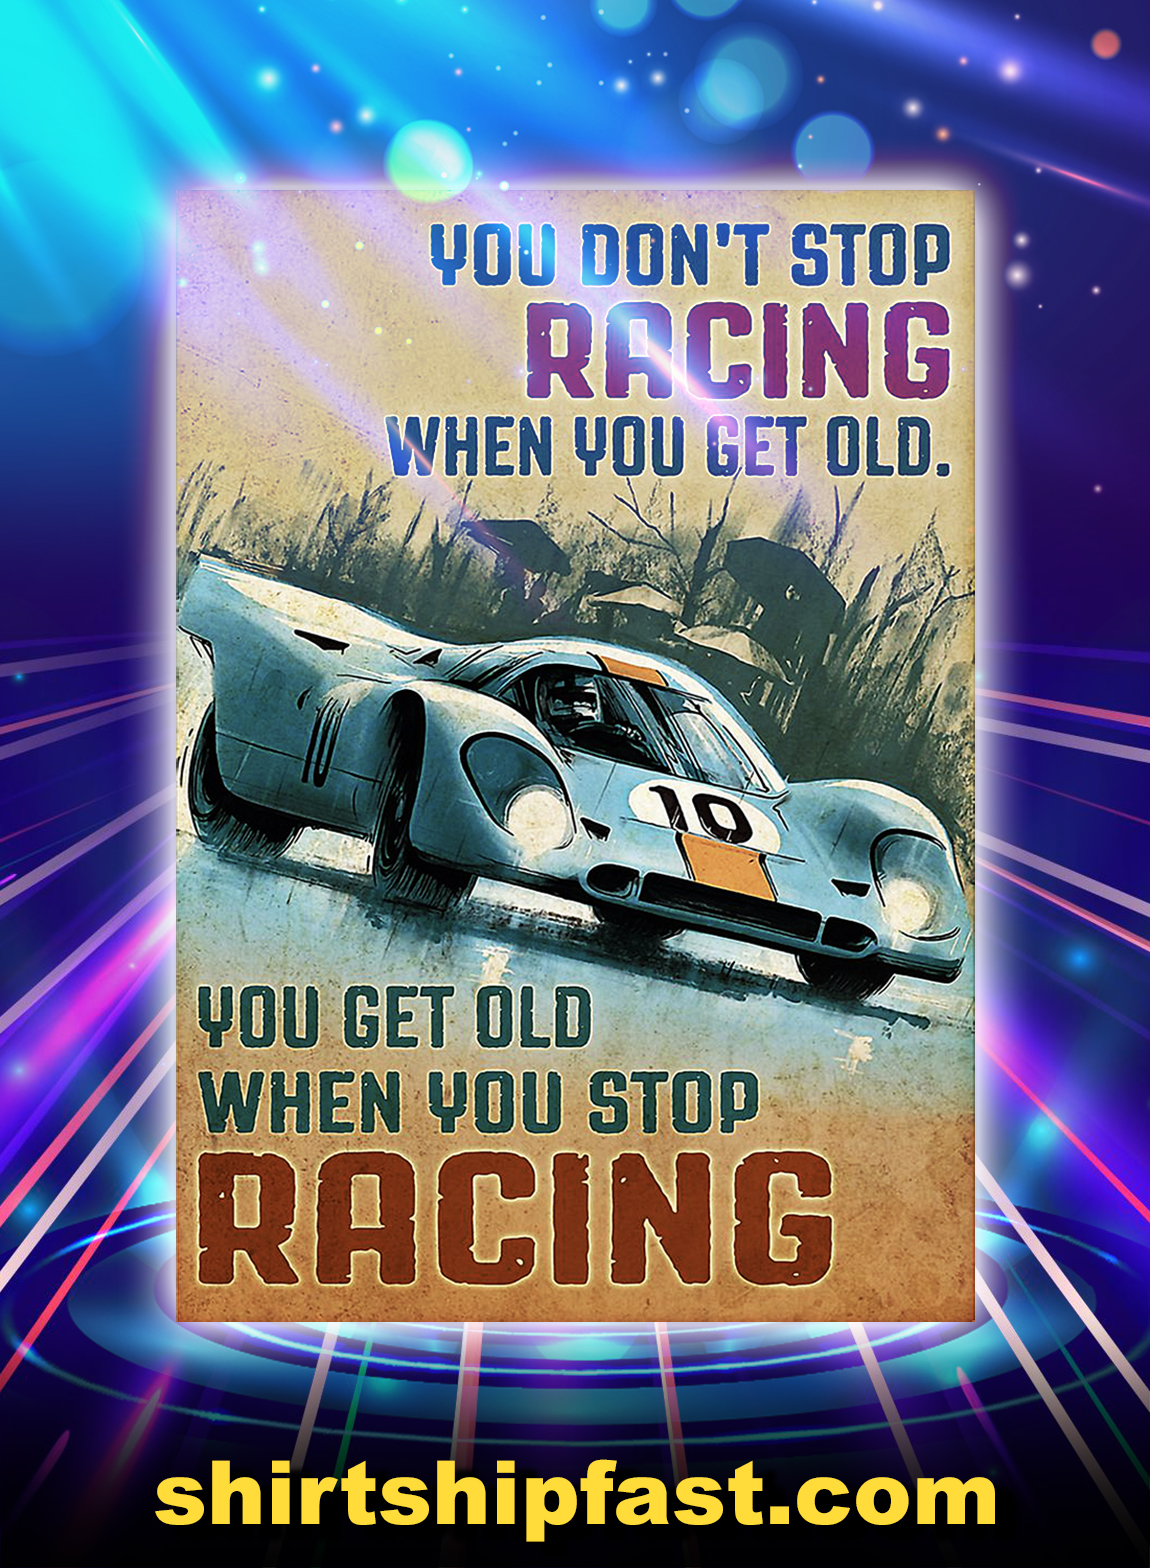 Sport car you don't stop racing when you get old poster - A2